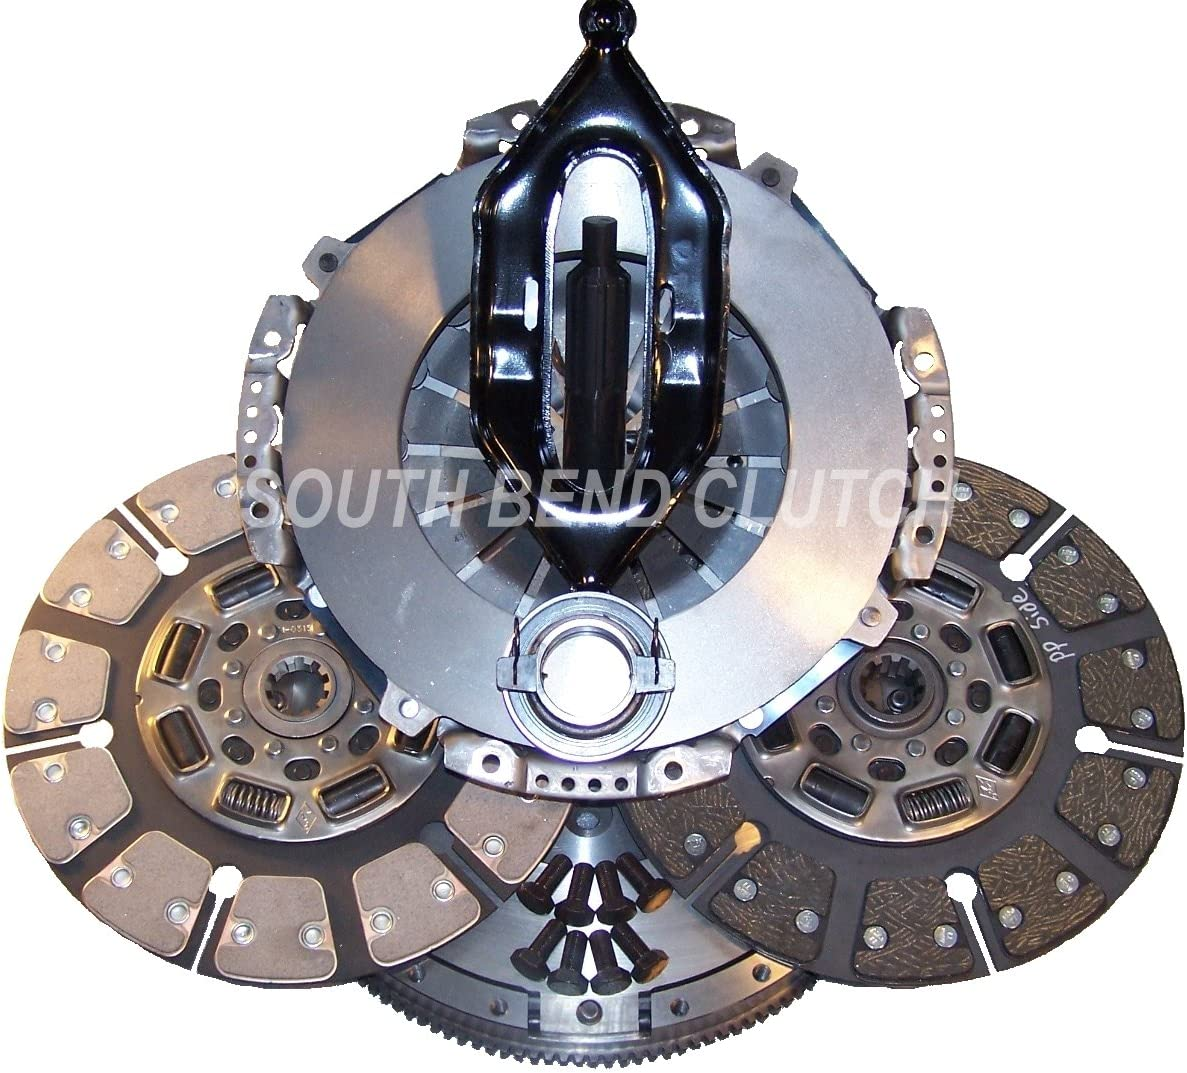 Ranking TOP8 South Bend Clutch Price reduction SDD3250-5K Kit